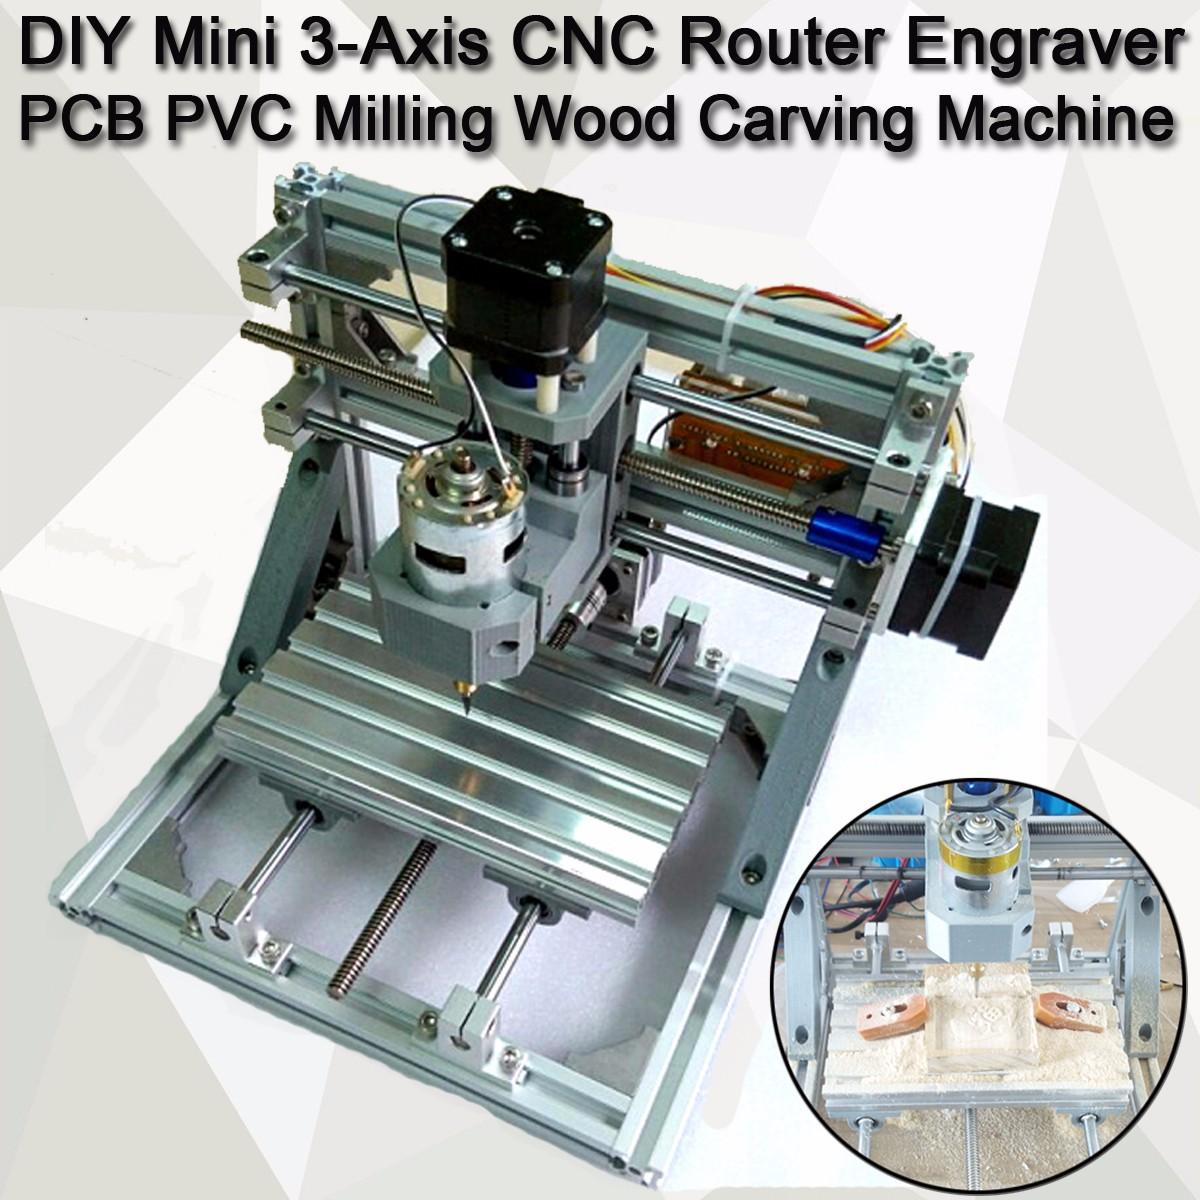 DIY Mini 3 Axis Router CNC 1610 GRBL Control CNC Machine Engraver PCB PVC Milling Wood Carving Machine working area 16x10.5x3cm 1610 mini cnc machine working area 16x10x3cm 3 axis pcb milling machine wood router cnc router for engraving machine